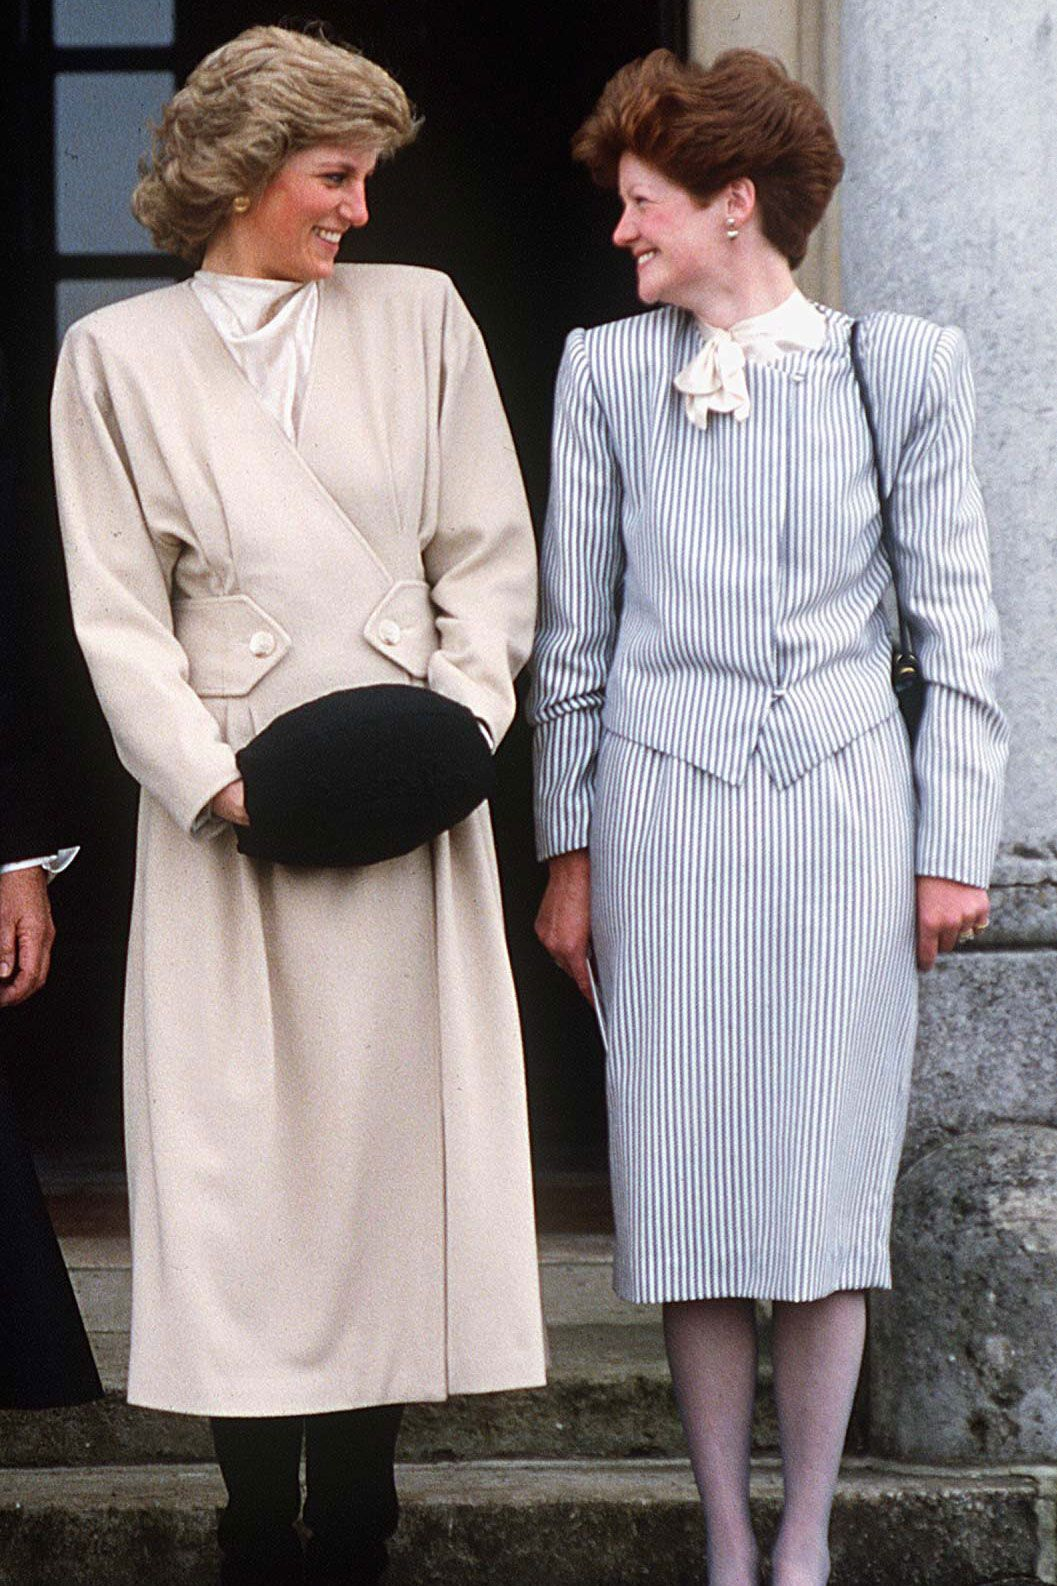 "<p>Diana was only 16 when she met Prince Charles, but at the time he was actually <a href=""http://www.goodhousekeeping.com/life/entertainment/g2812/princess-diana-facts/"" target=""_blank"" data-tracking-id=""recirc-text-link"">seeing her sister</a>, Lady Sarah Spencer. How is that not awkward?&nbsp&#x3B;</p><p><strong data-redactor-tag=""strong"">RELATED:&nbsp&#x3B;</strong><a href=""http://www.redbookmag.com/love-sex/relationships/a50951/prince-charles-princess-diana-new-book-marriage/"" target=""_blank"" data-tracking-id=""recirc-text-link""><strong data-redactor-tag=""strong"">Prince Charles ""Was the Architect of the Disaster"" Between Him and Diana, a New Book Claims</strong></a><span class=""redactor-invisible-space"" data-verified=""redactor"" data-redactor-tag=""span"" data-redactor-class=""redactor-invisible-space""></span></p>"